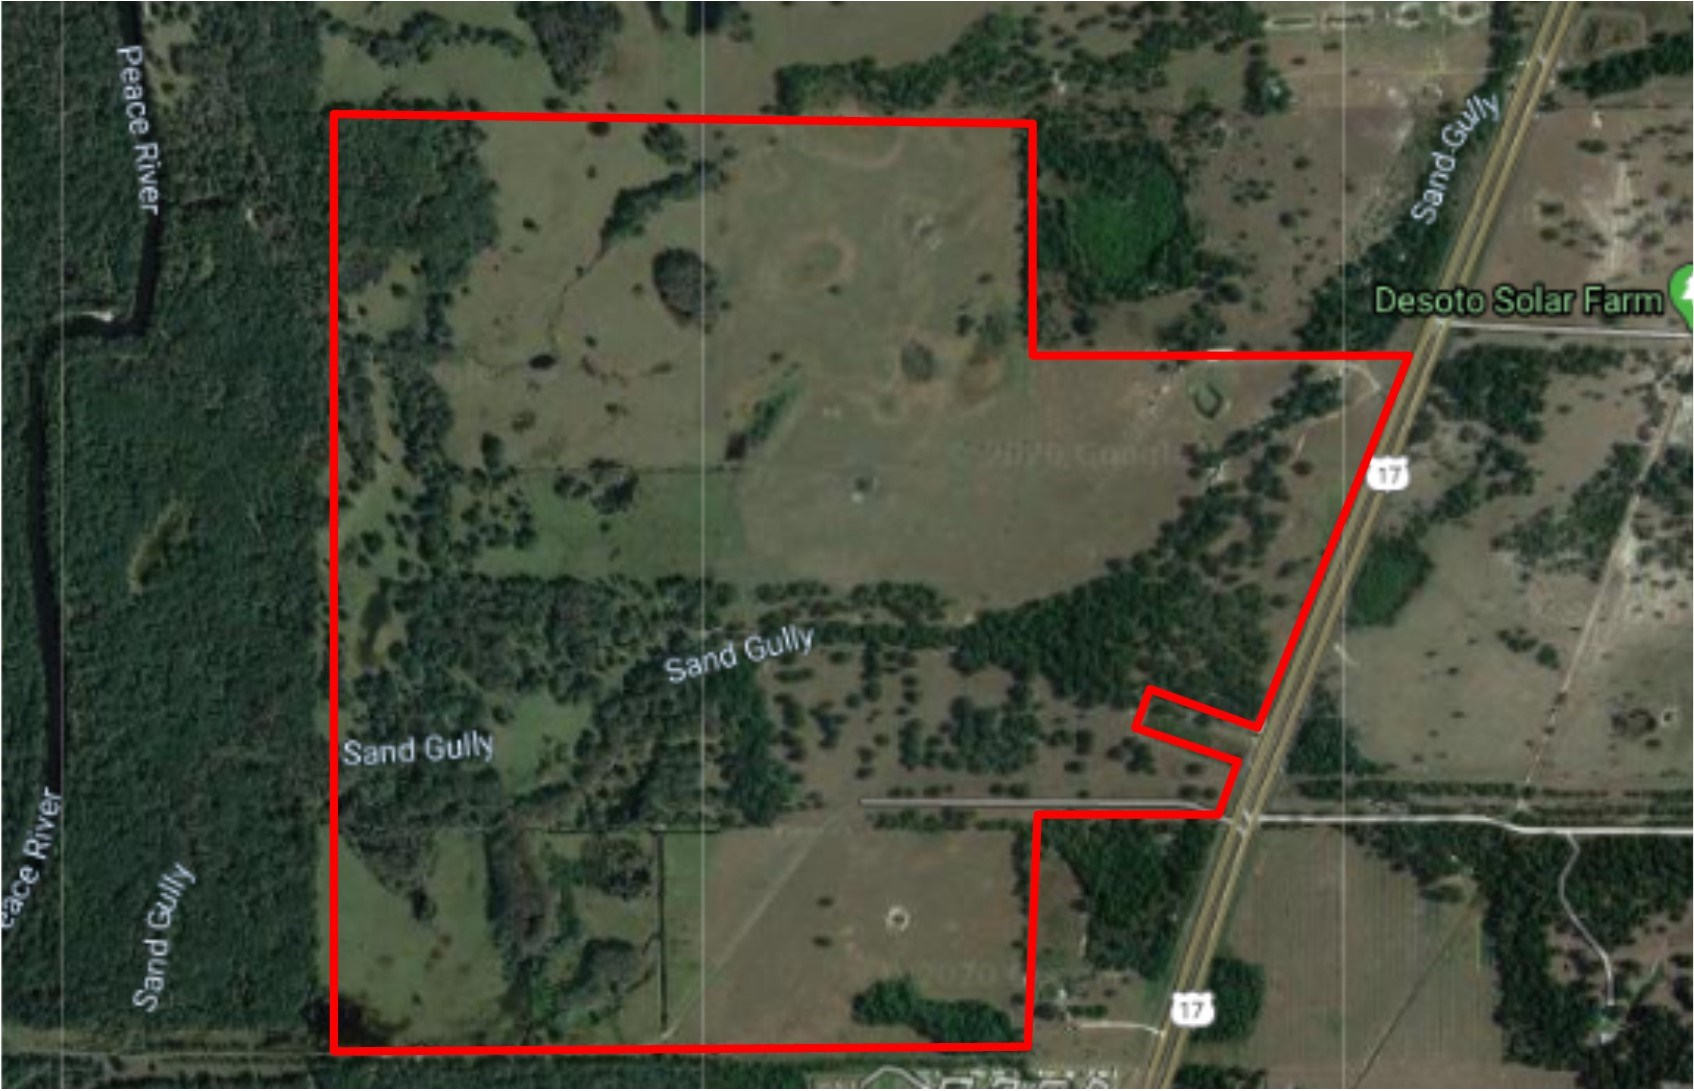 562 +/- ACRE RANCH IN DESOTO COUNTY!